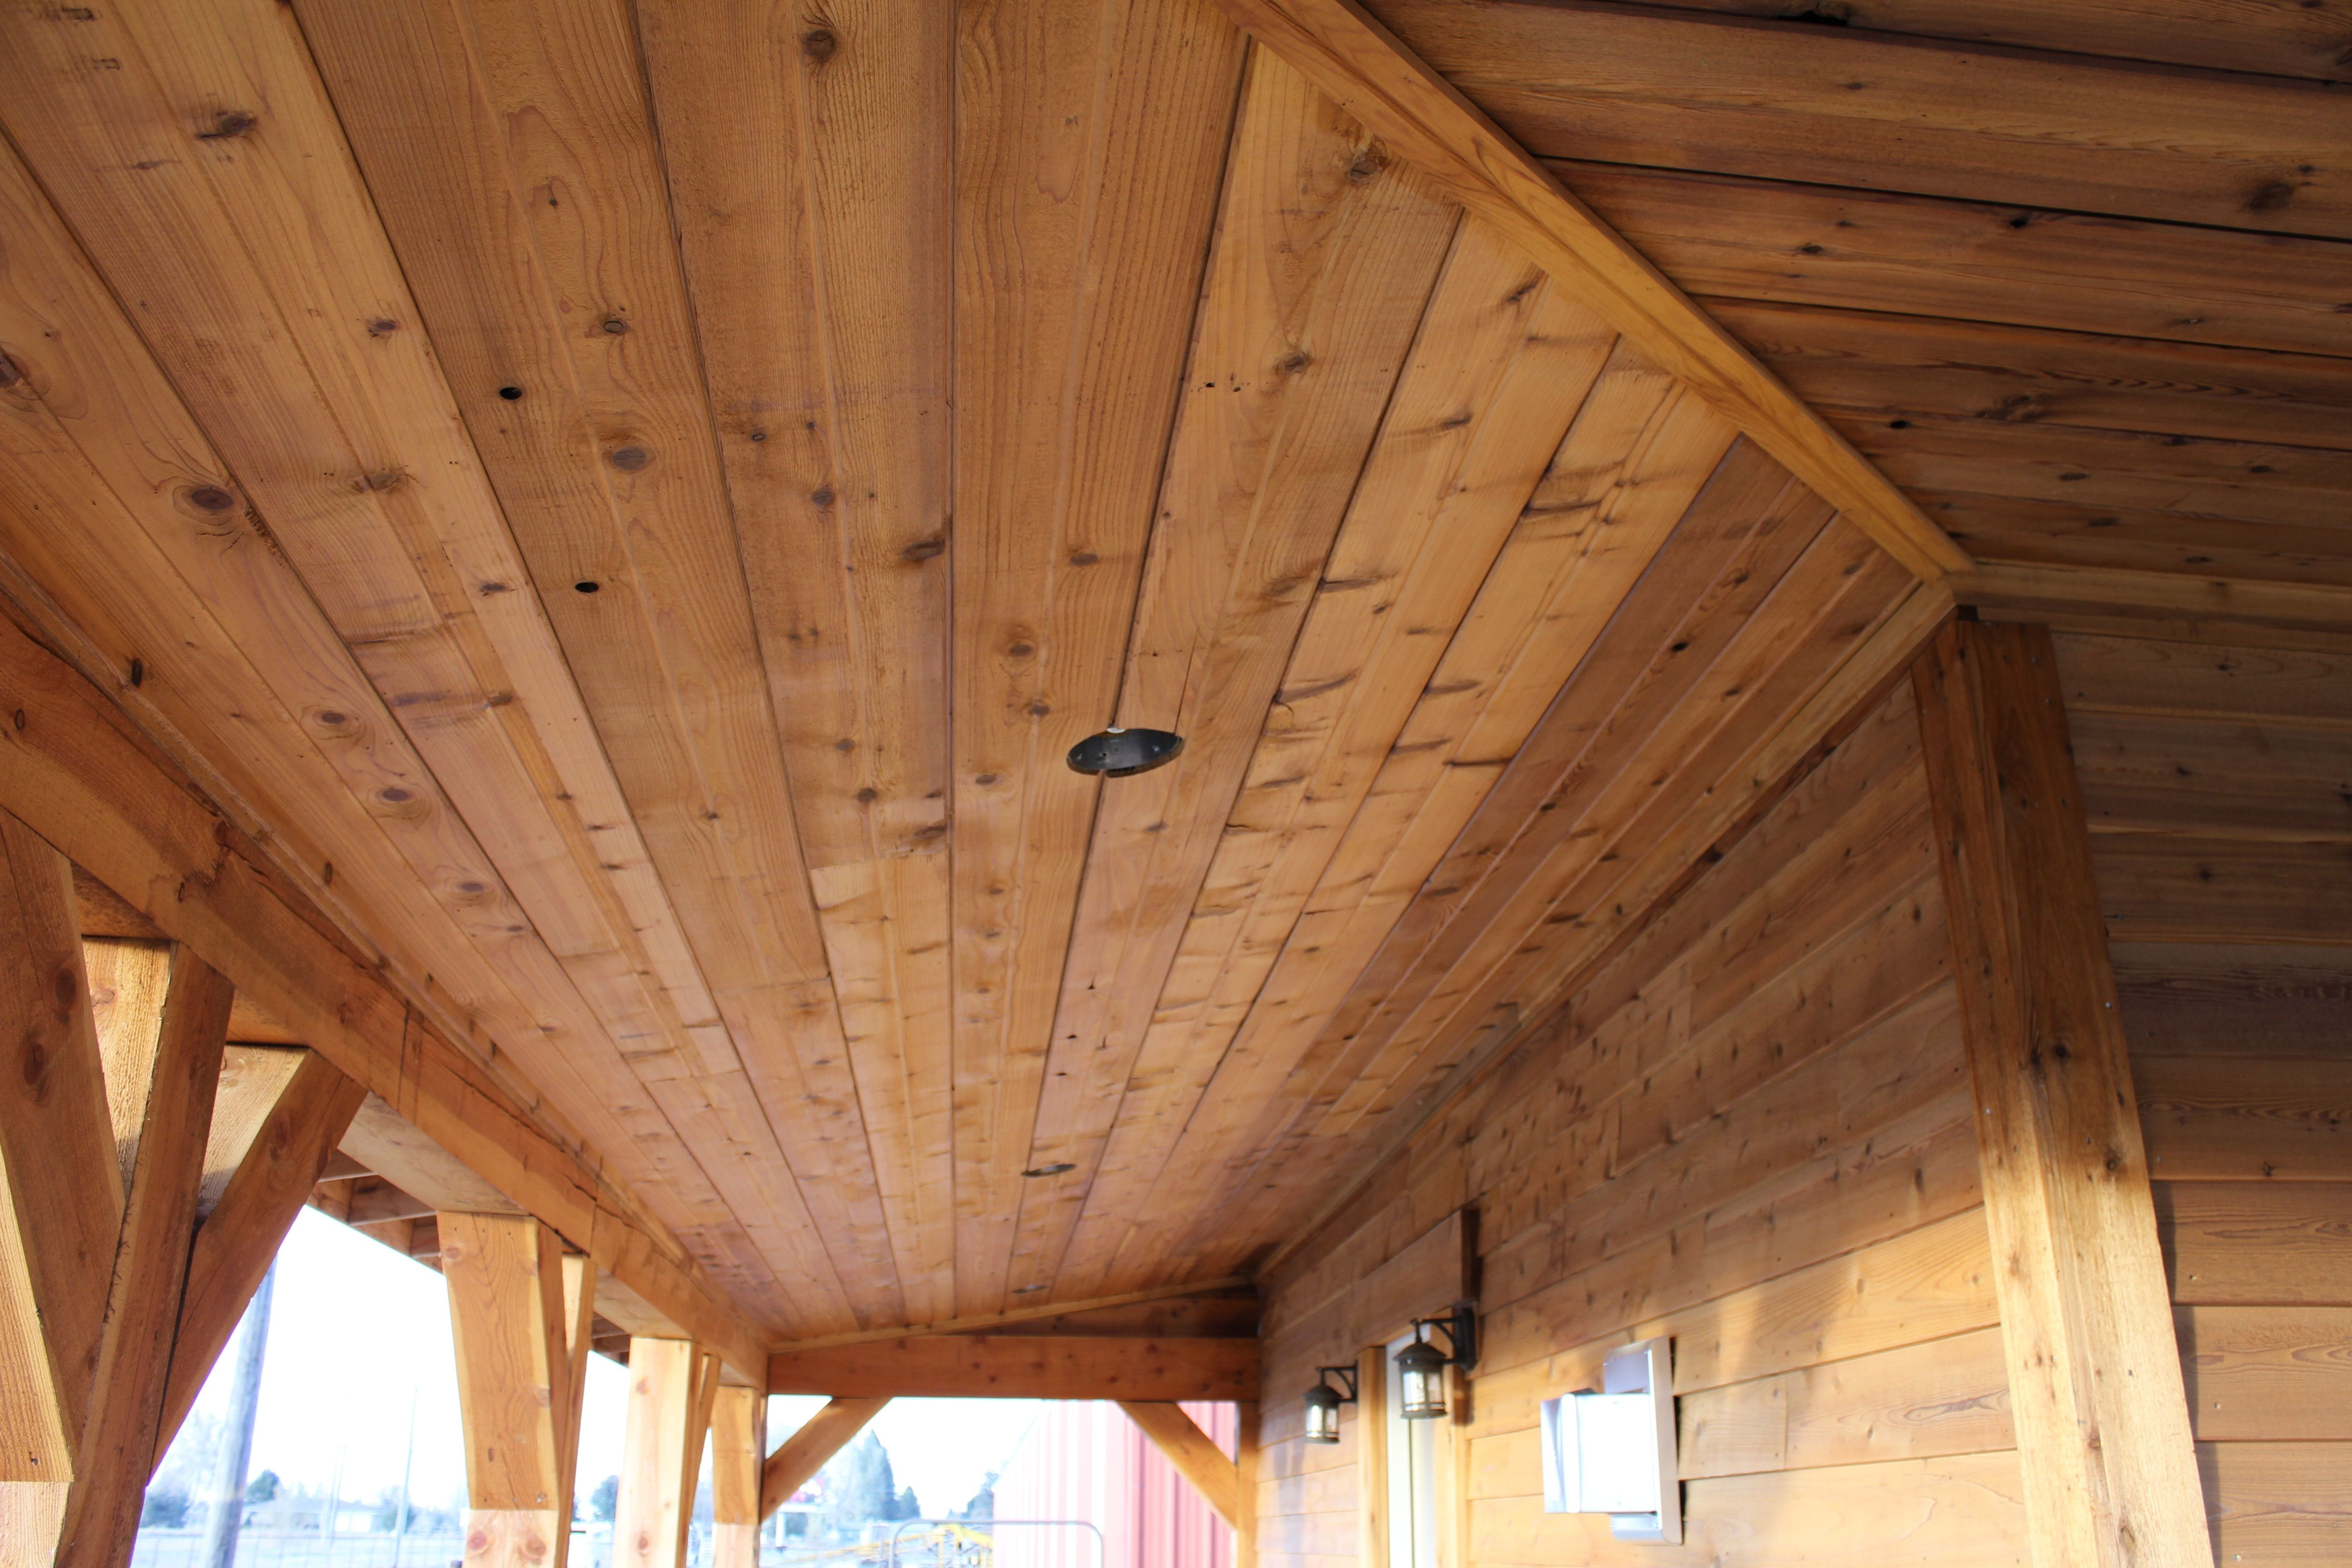 Rustic Ceiling This Is Our 1x10 Channel Rustic Cedar Cedar Makes For